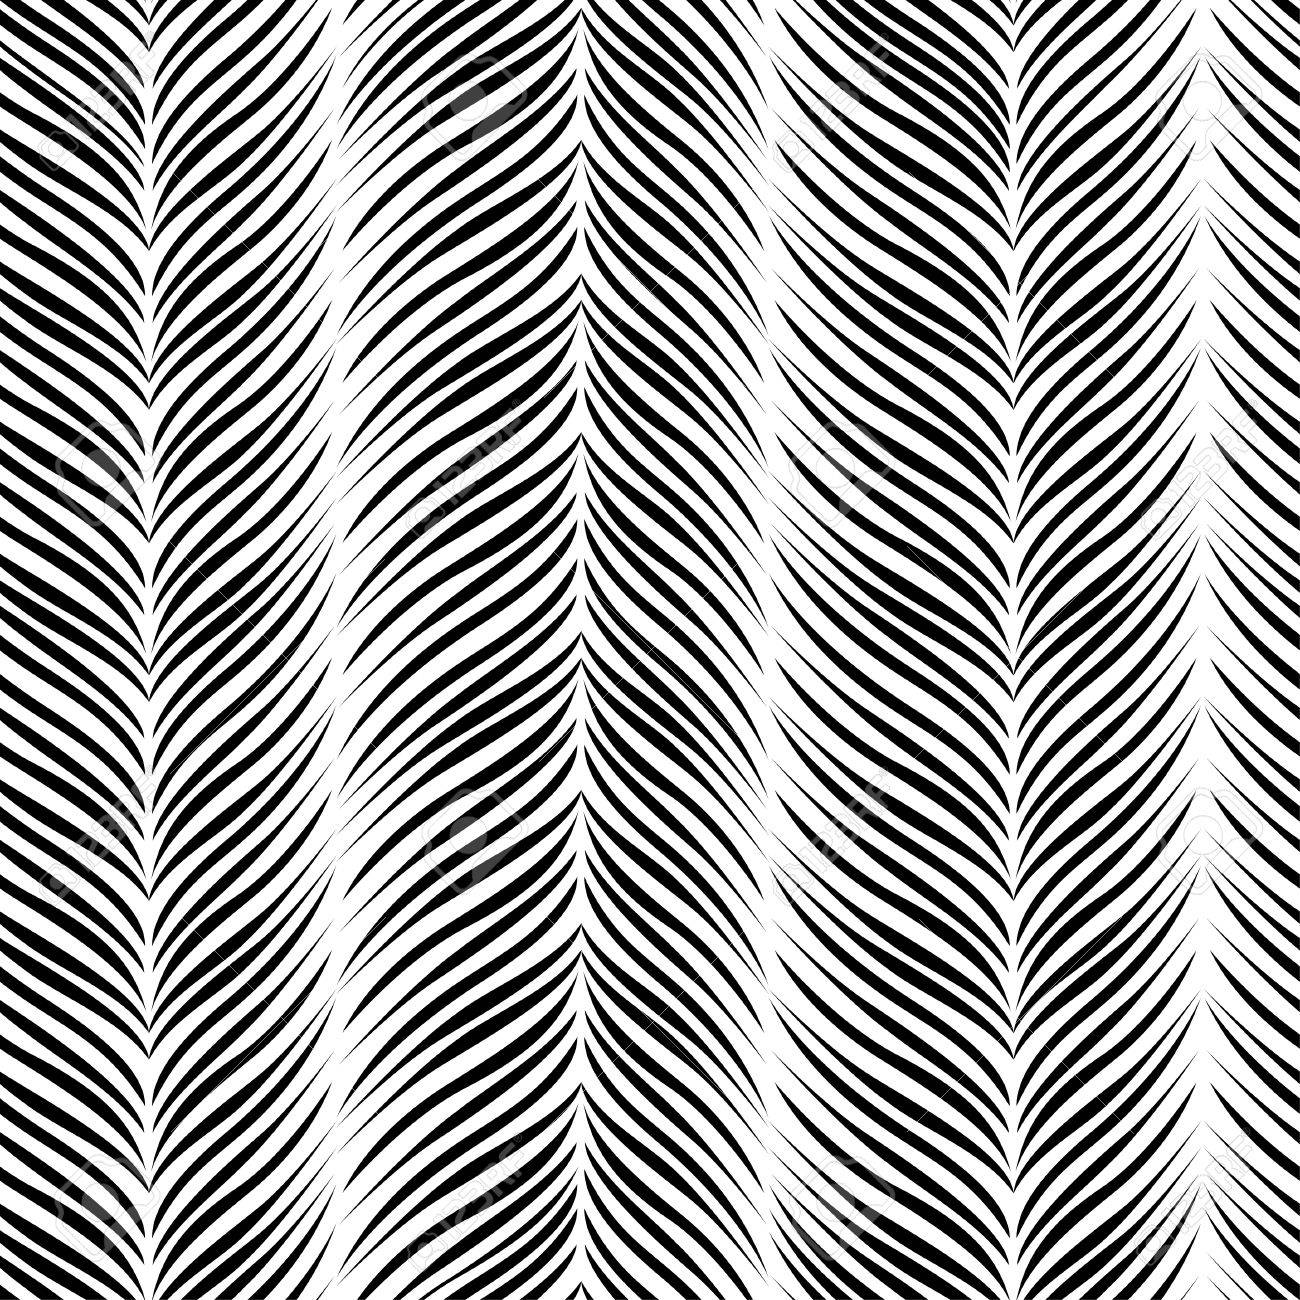 Trendy simple seamless tropical pattern. - 80332327